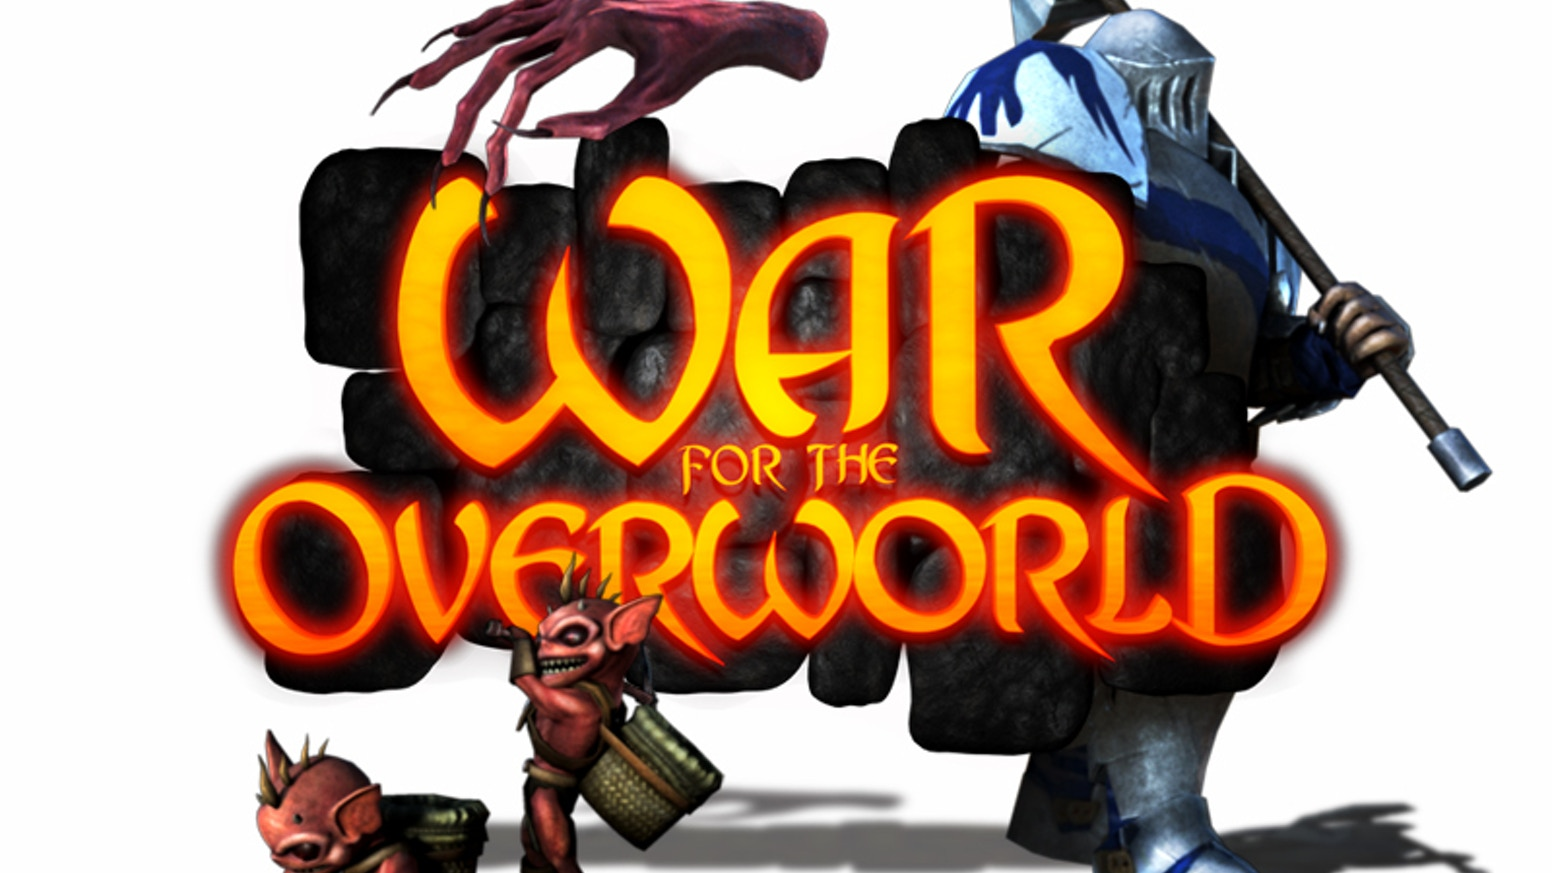 War for the Overworld is a next-generation Dungeon Management Game that sees you as a villainous god-like entity in charge of running your very own Dungeon.Influenced by Dungeon Keeper, Overlord and Evil Genius.